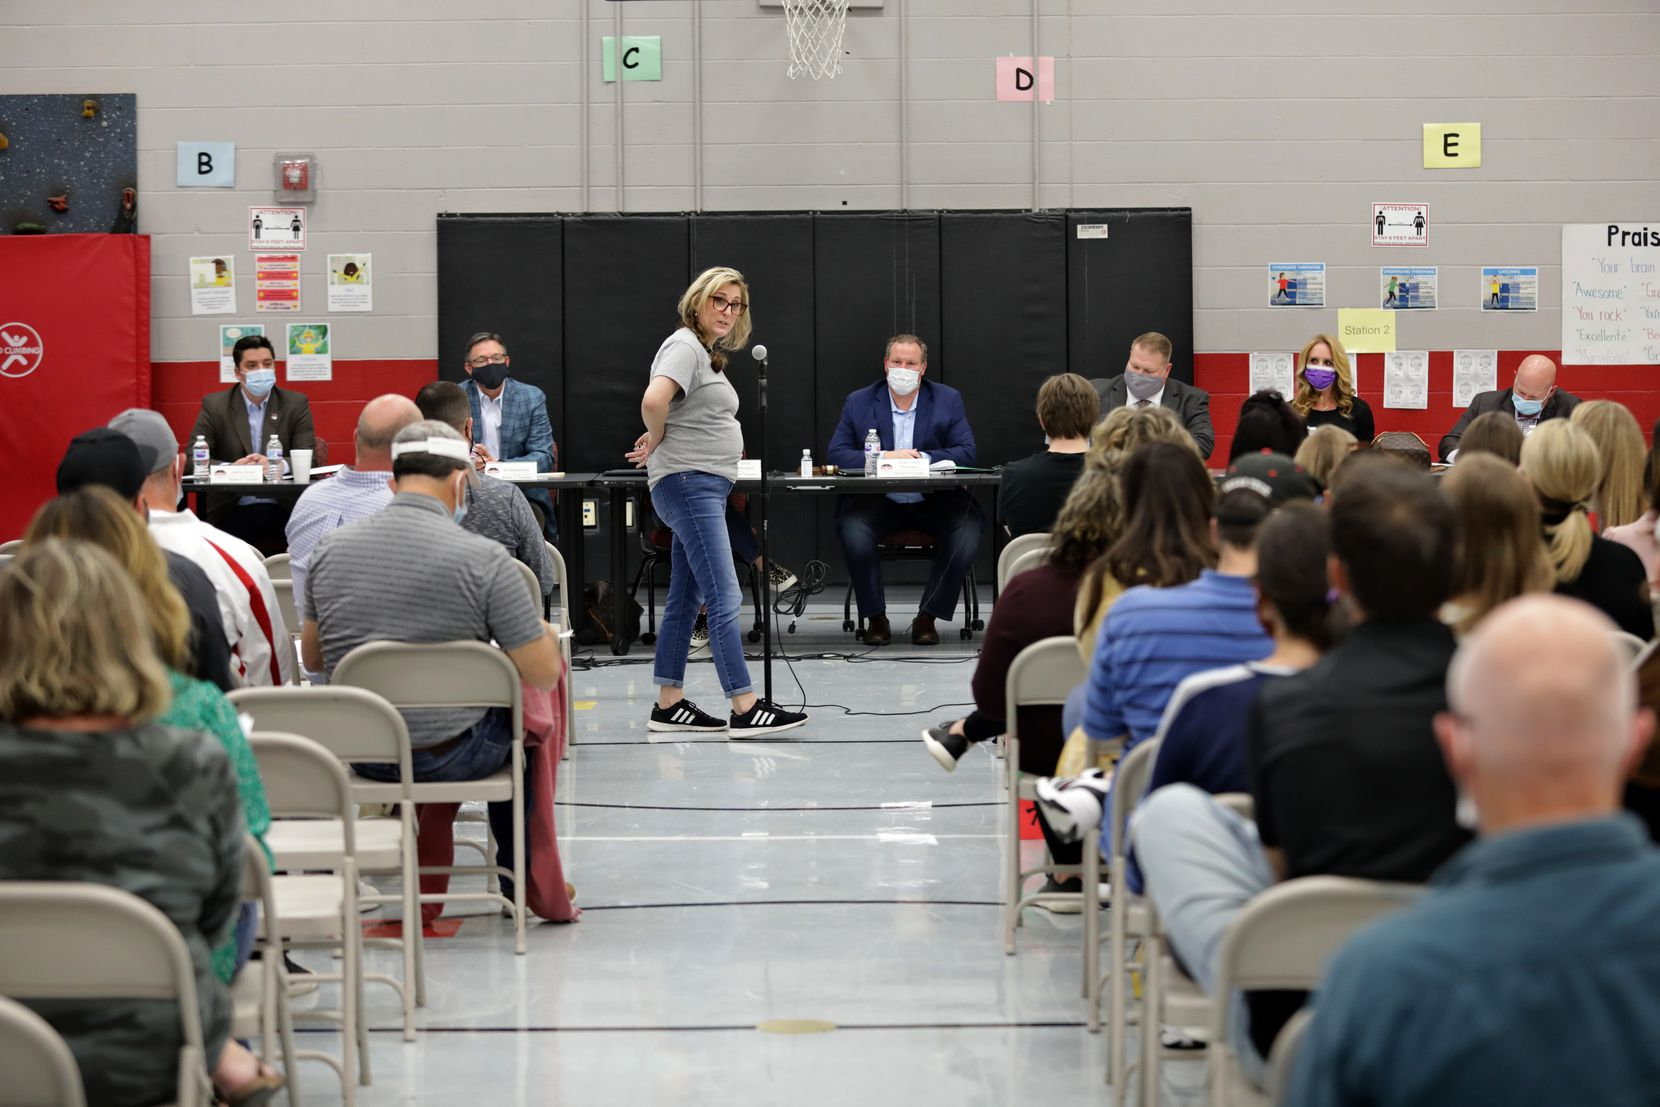 Anna Sides speaks during a Lovejoy ISD public meeting at Lovejoy Elementary in Allen, Texas, on April 19, 2021.